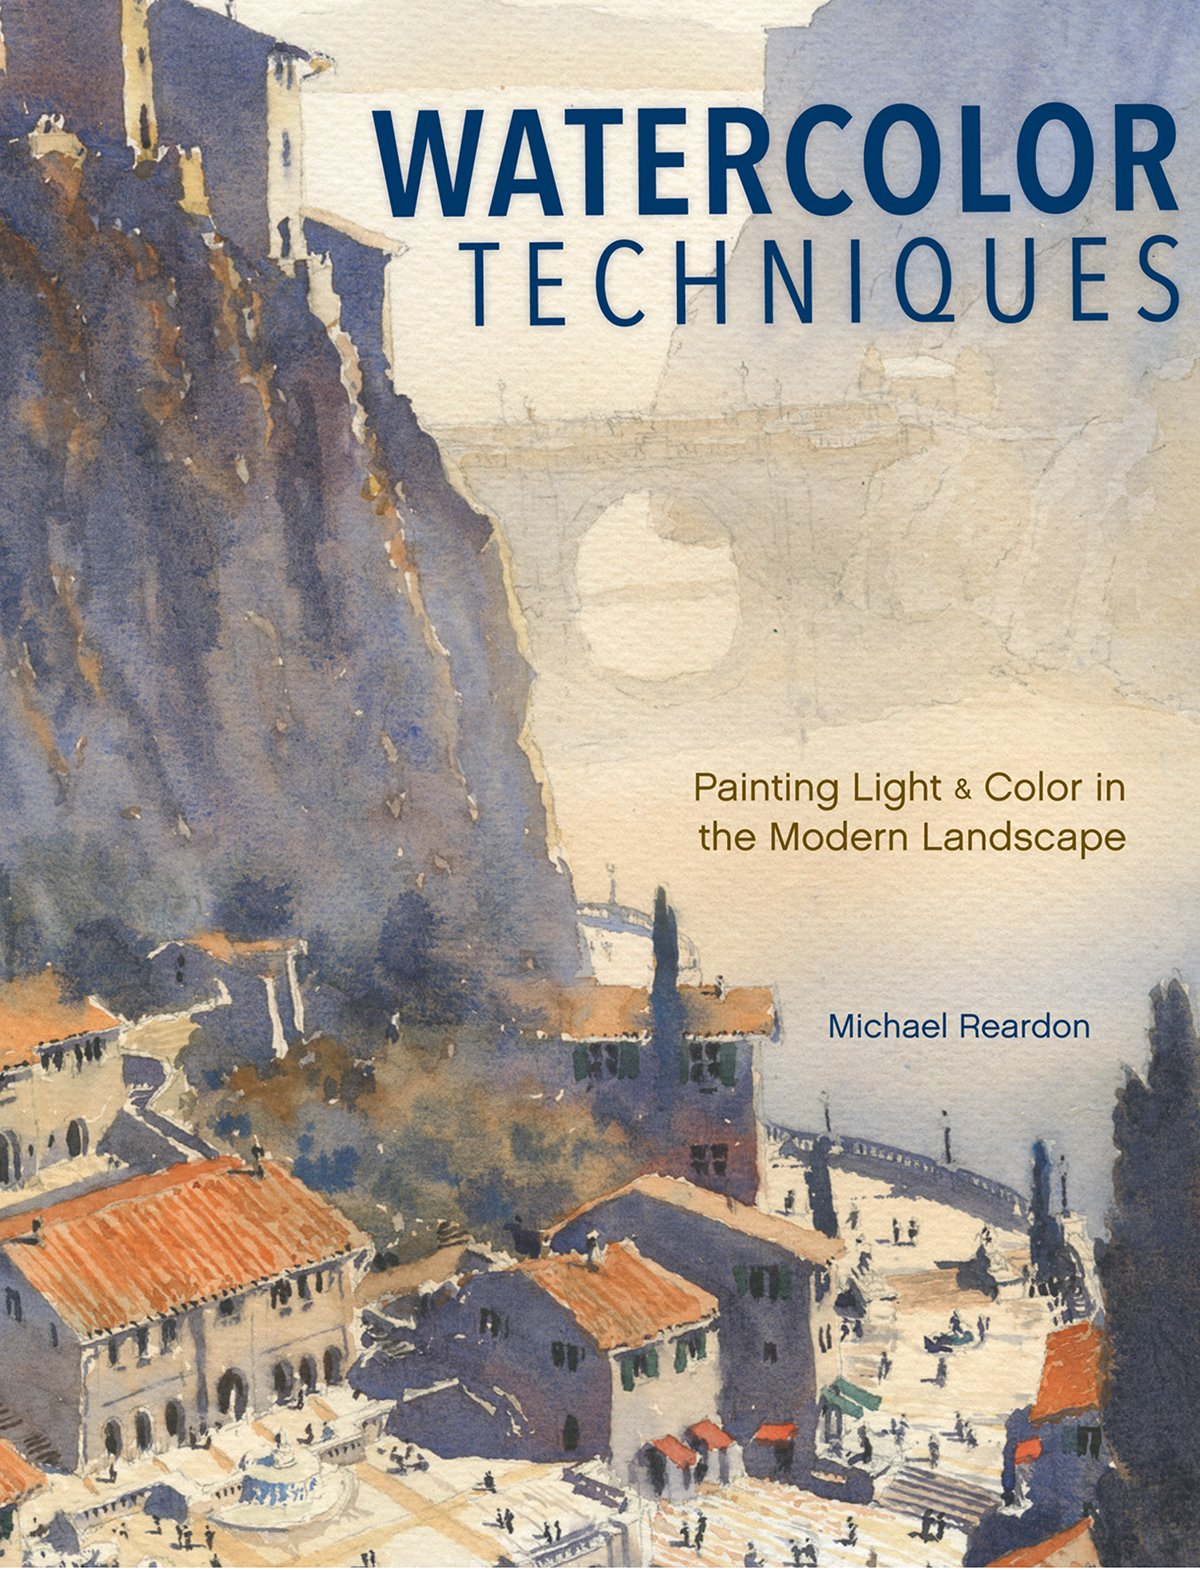 Watercolor artist magazine subscription - Watercolor Techniques Painting Light And Color In Landscapes And Cityscapes Michael Reardon 0035313662959 Amazon Com Books